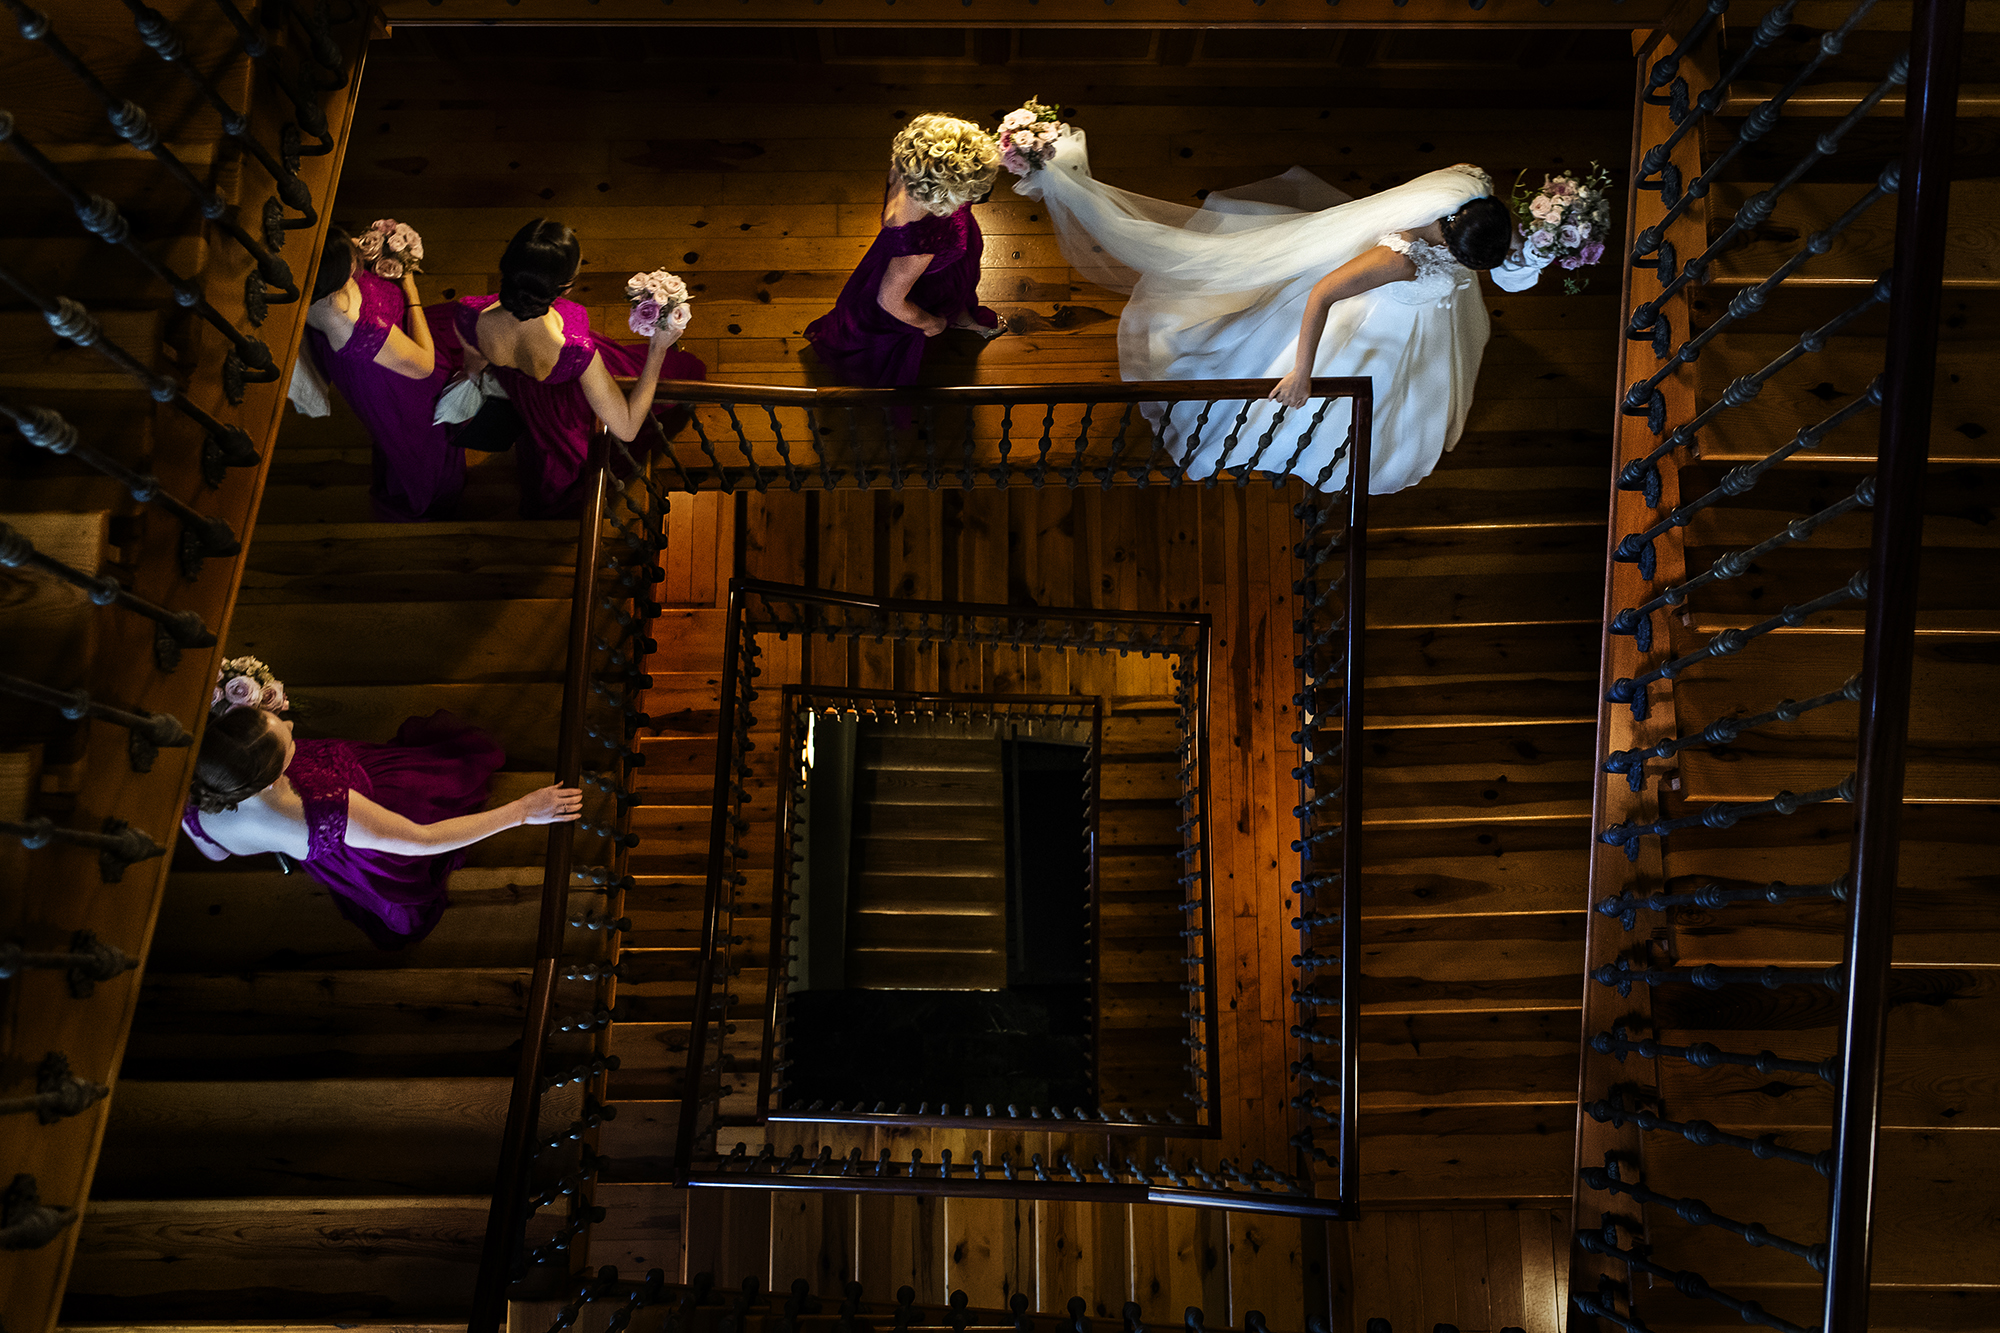 Bridal party descending spiral staircase - photo by Victor Lax